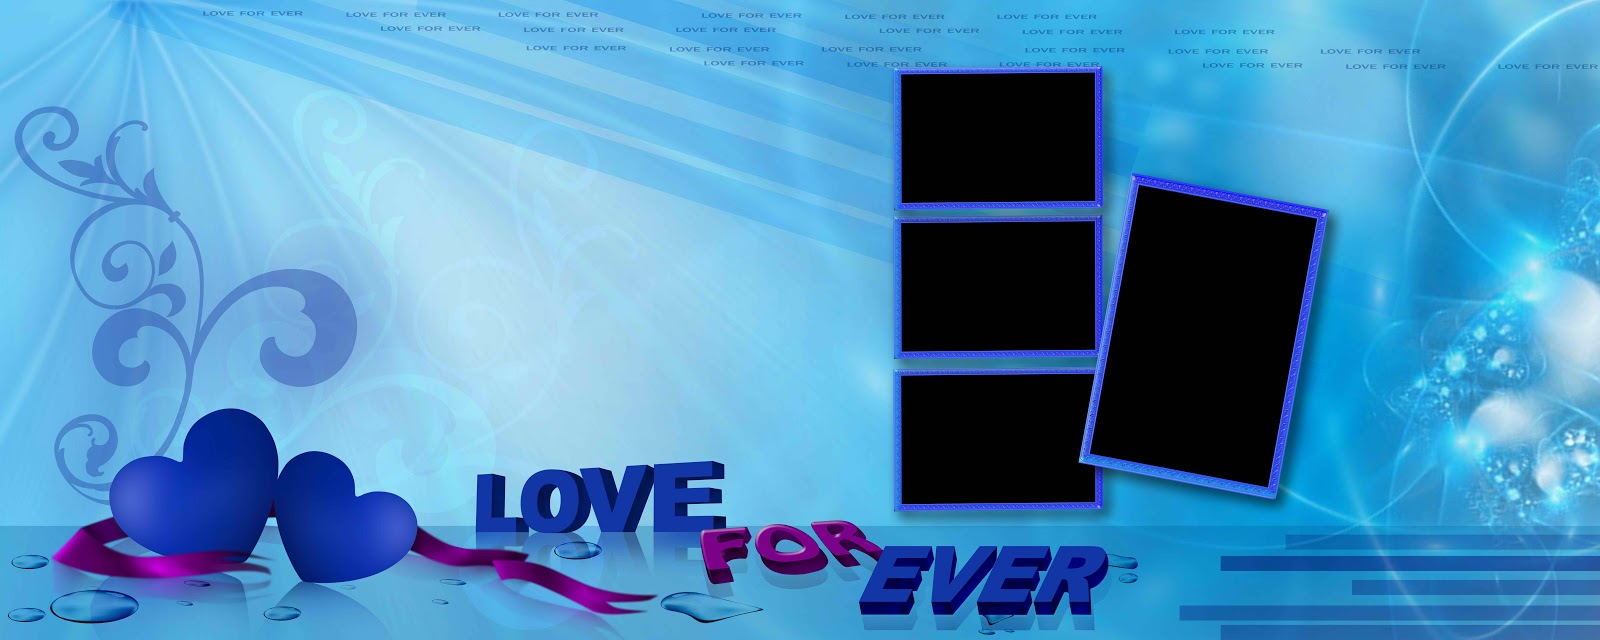 Photo editing software free download full version blogspot background